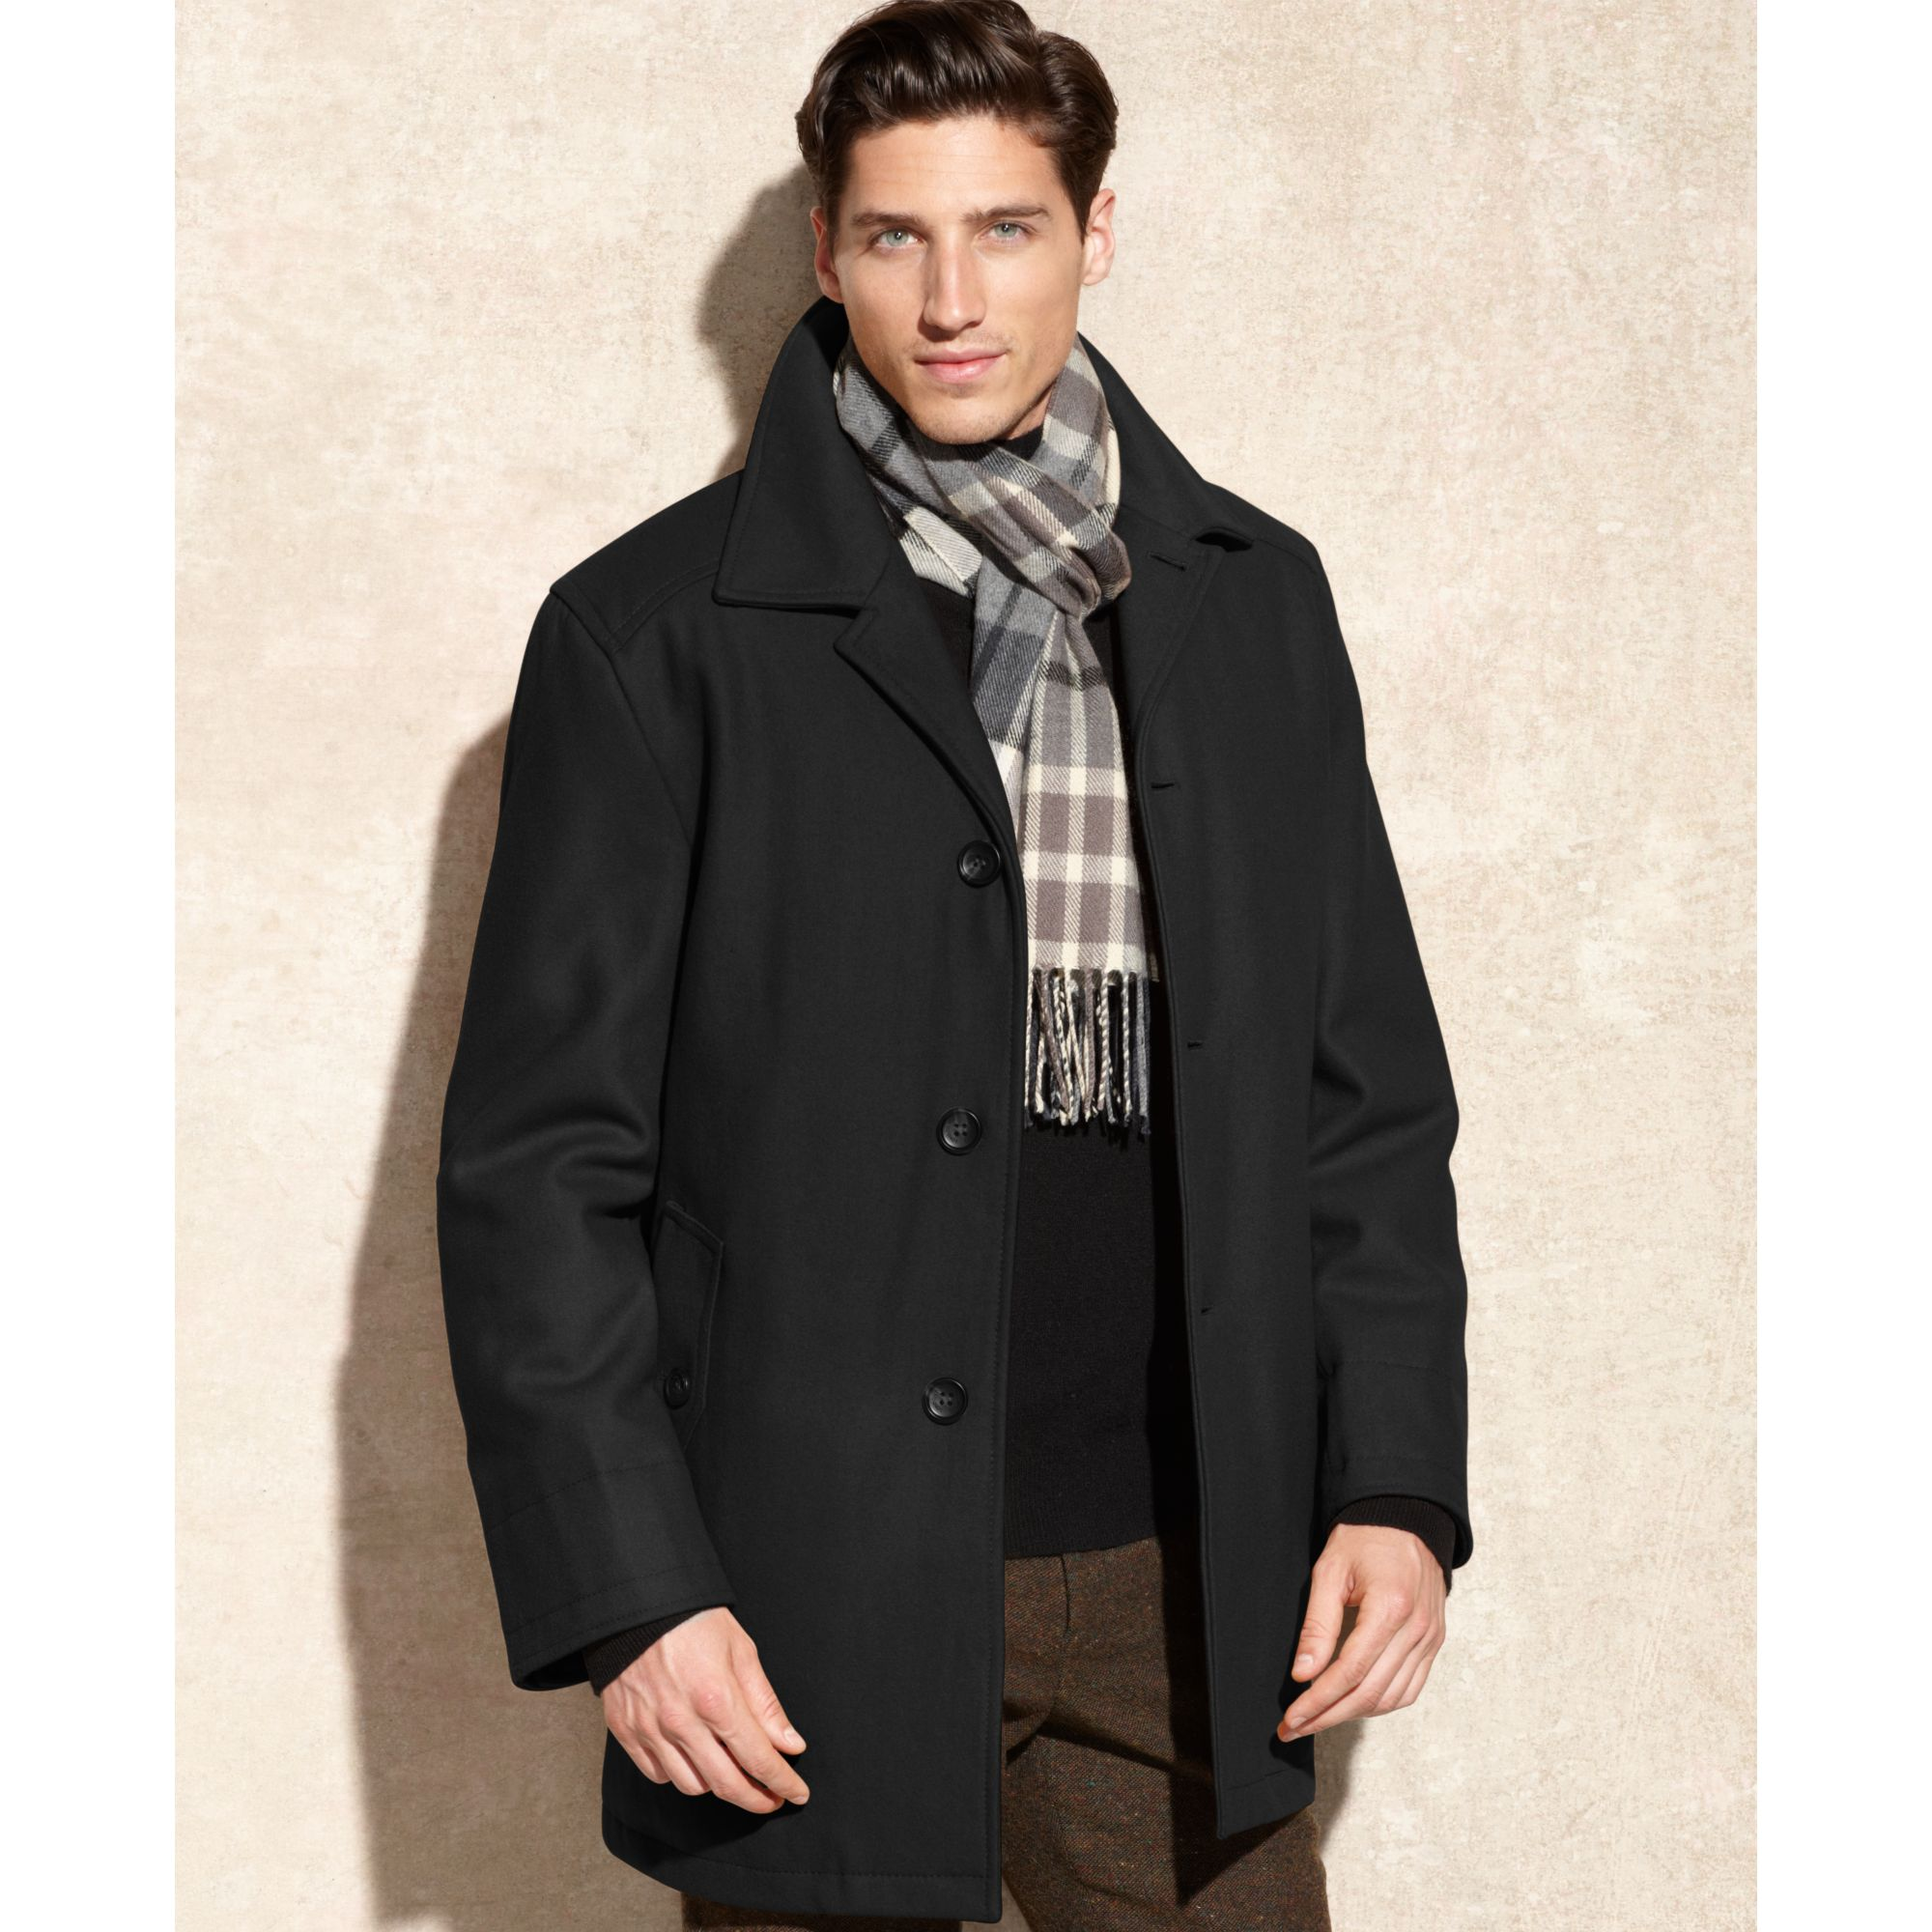 $250 - LONDON FOG Men&amp039s ALDEN Wool-blend CAR COAT w/SCARF - M